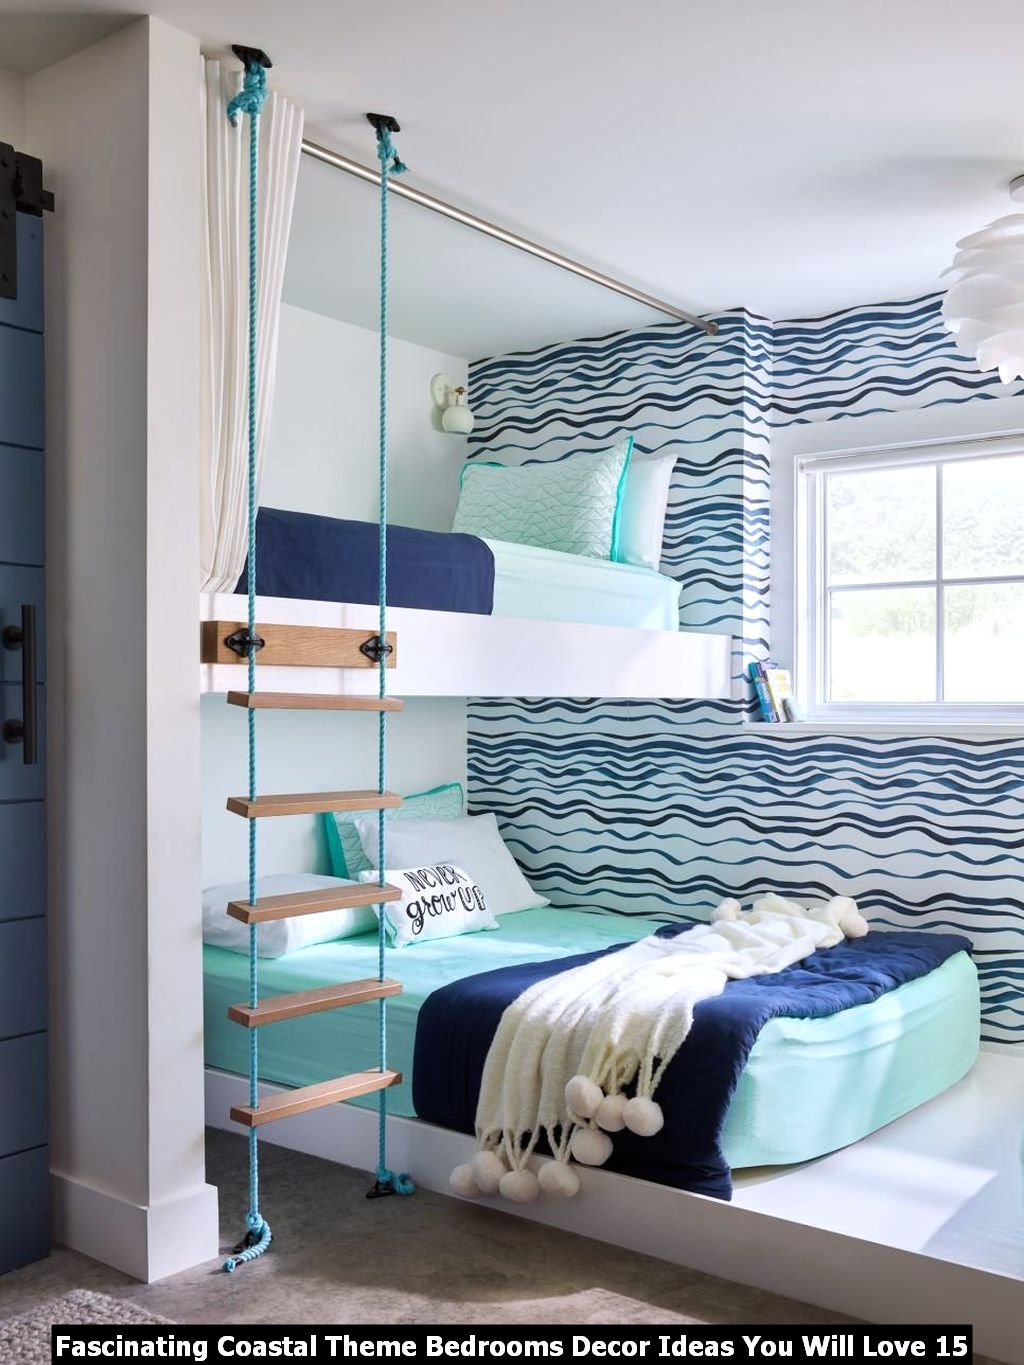 Fascinating Coastal Theme Bedrooms Decor Ideas You Will Love 15